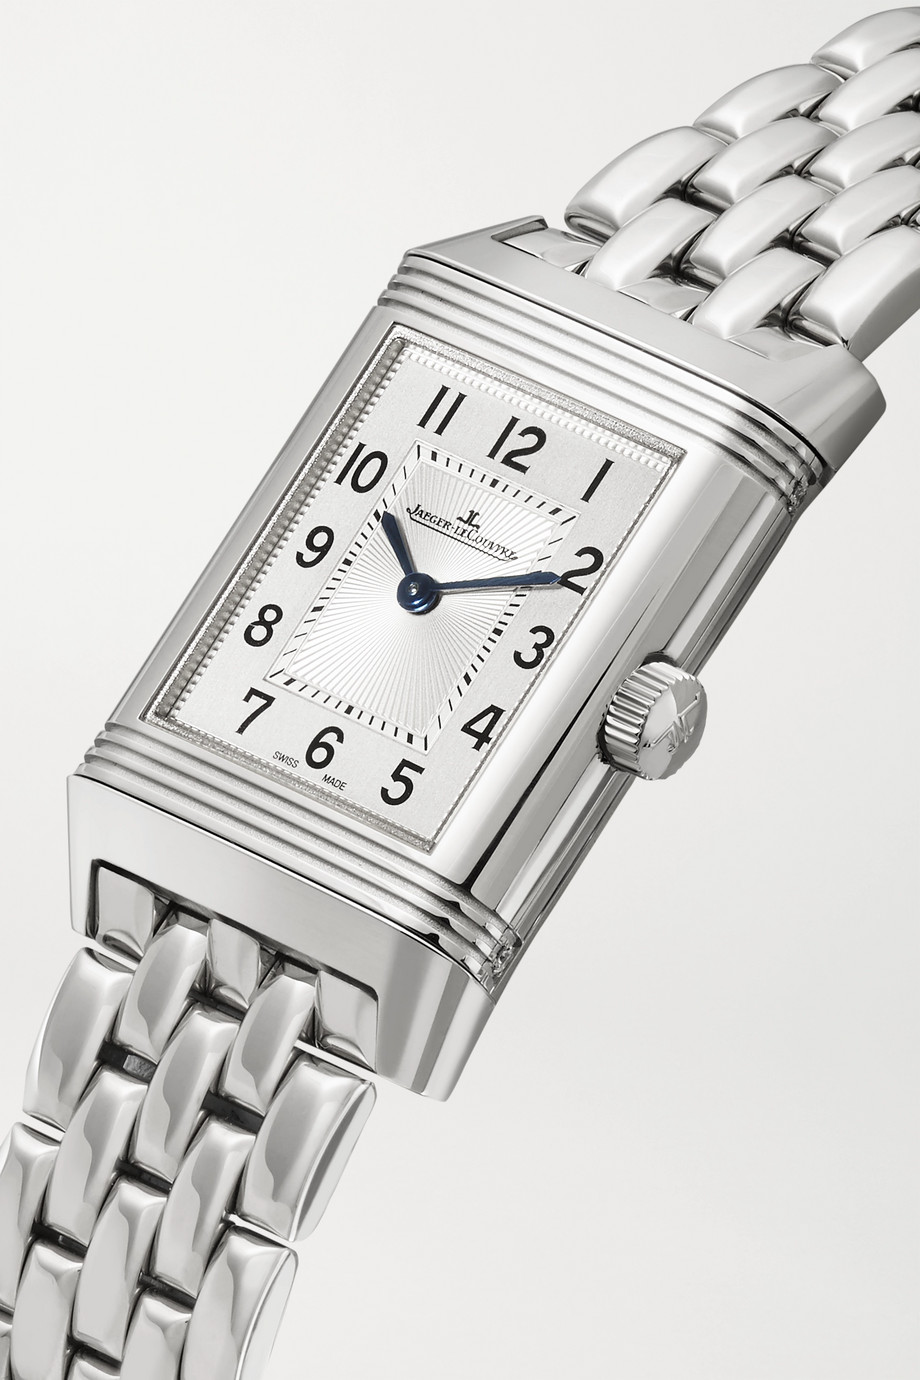 Jaeger-LeCoultre Reverso Classic Duetto small hand-wound stainless steel and diamond watch